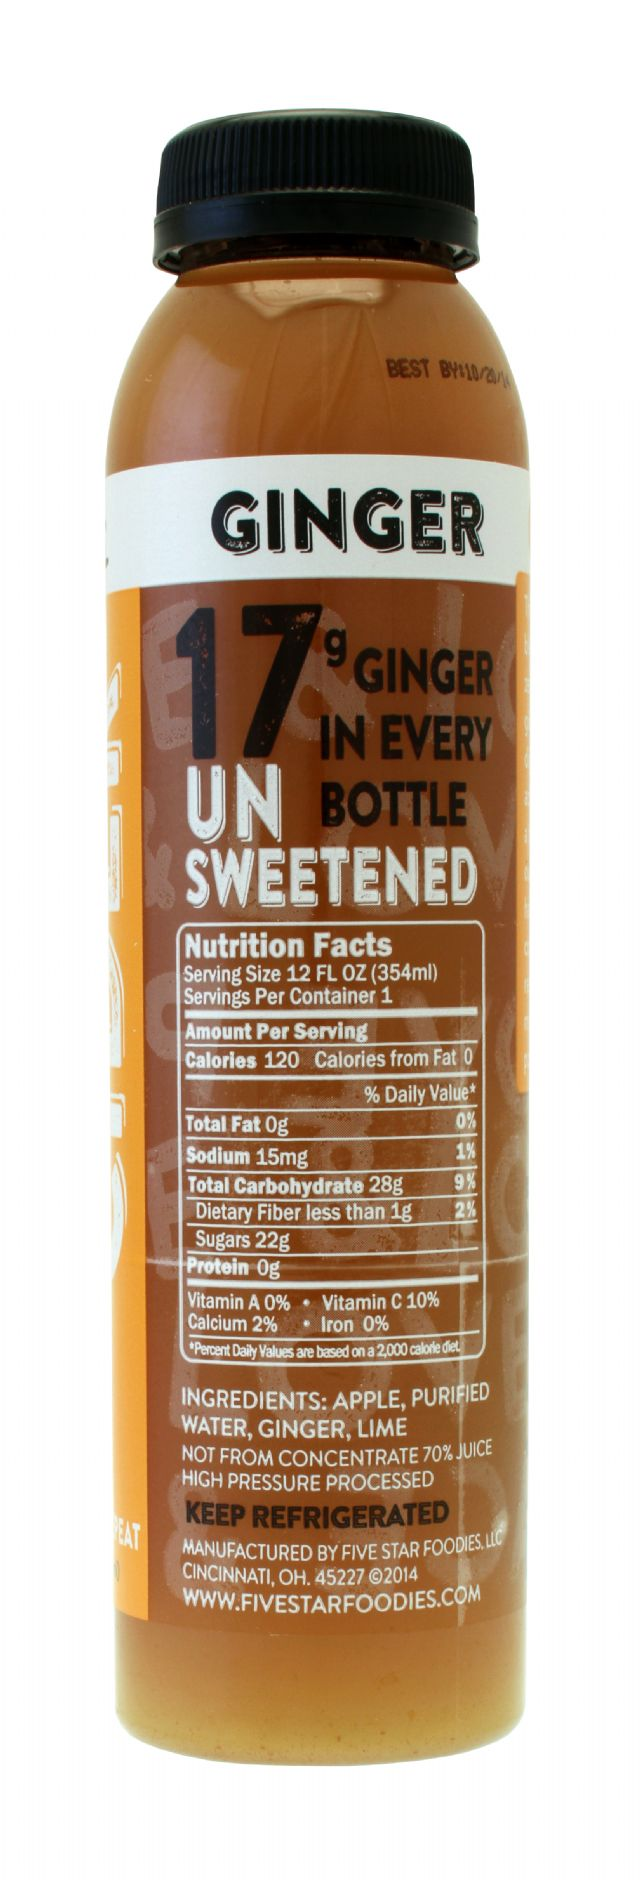 Foodies Cider: Foodies Ginger Facts